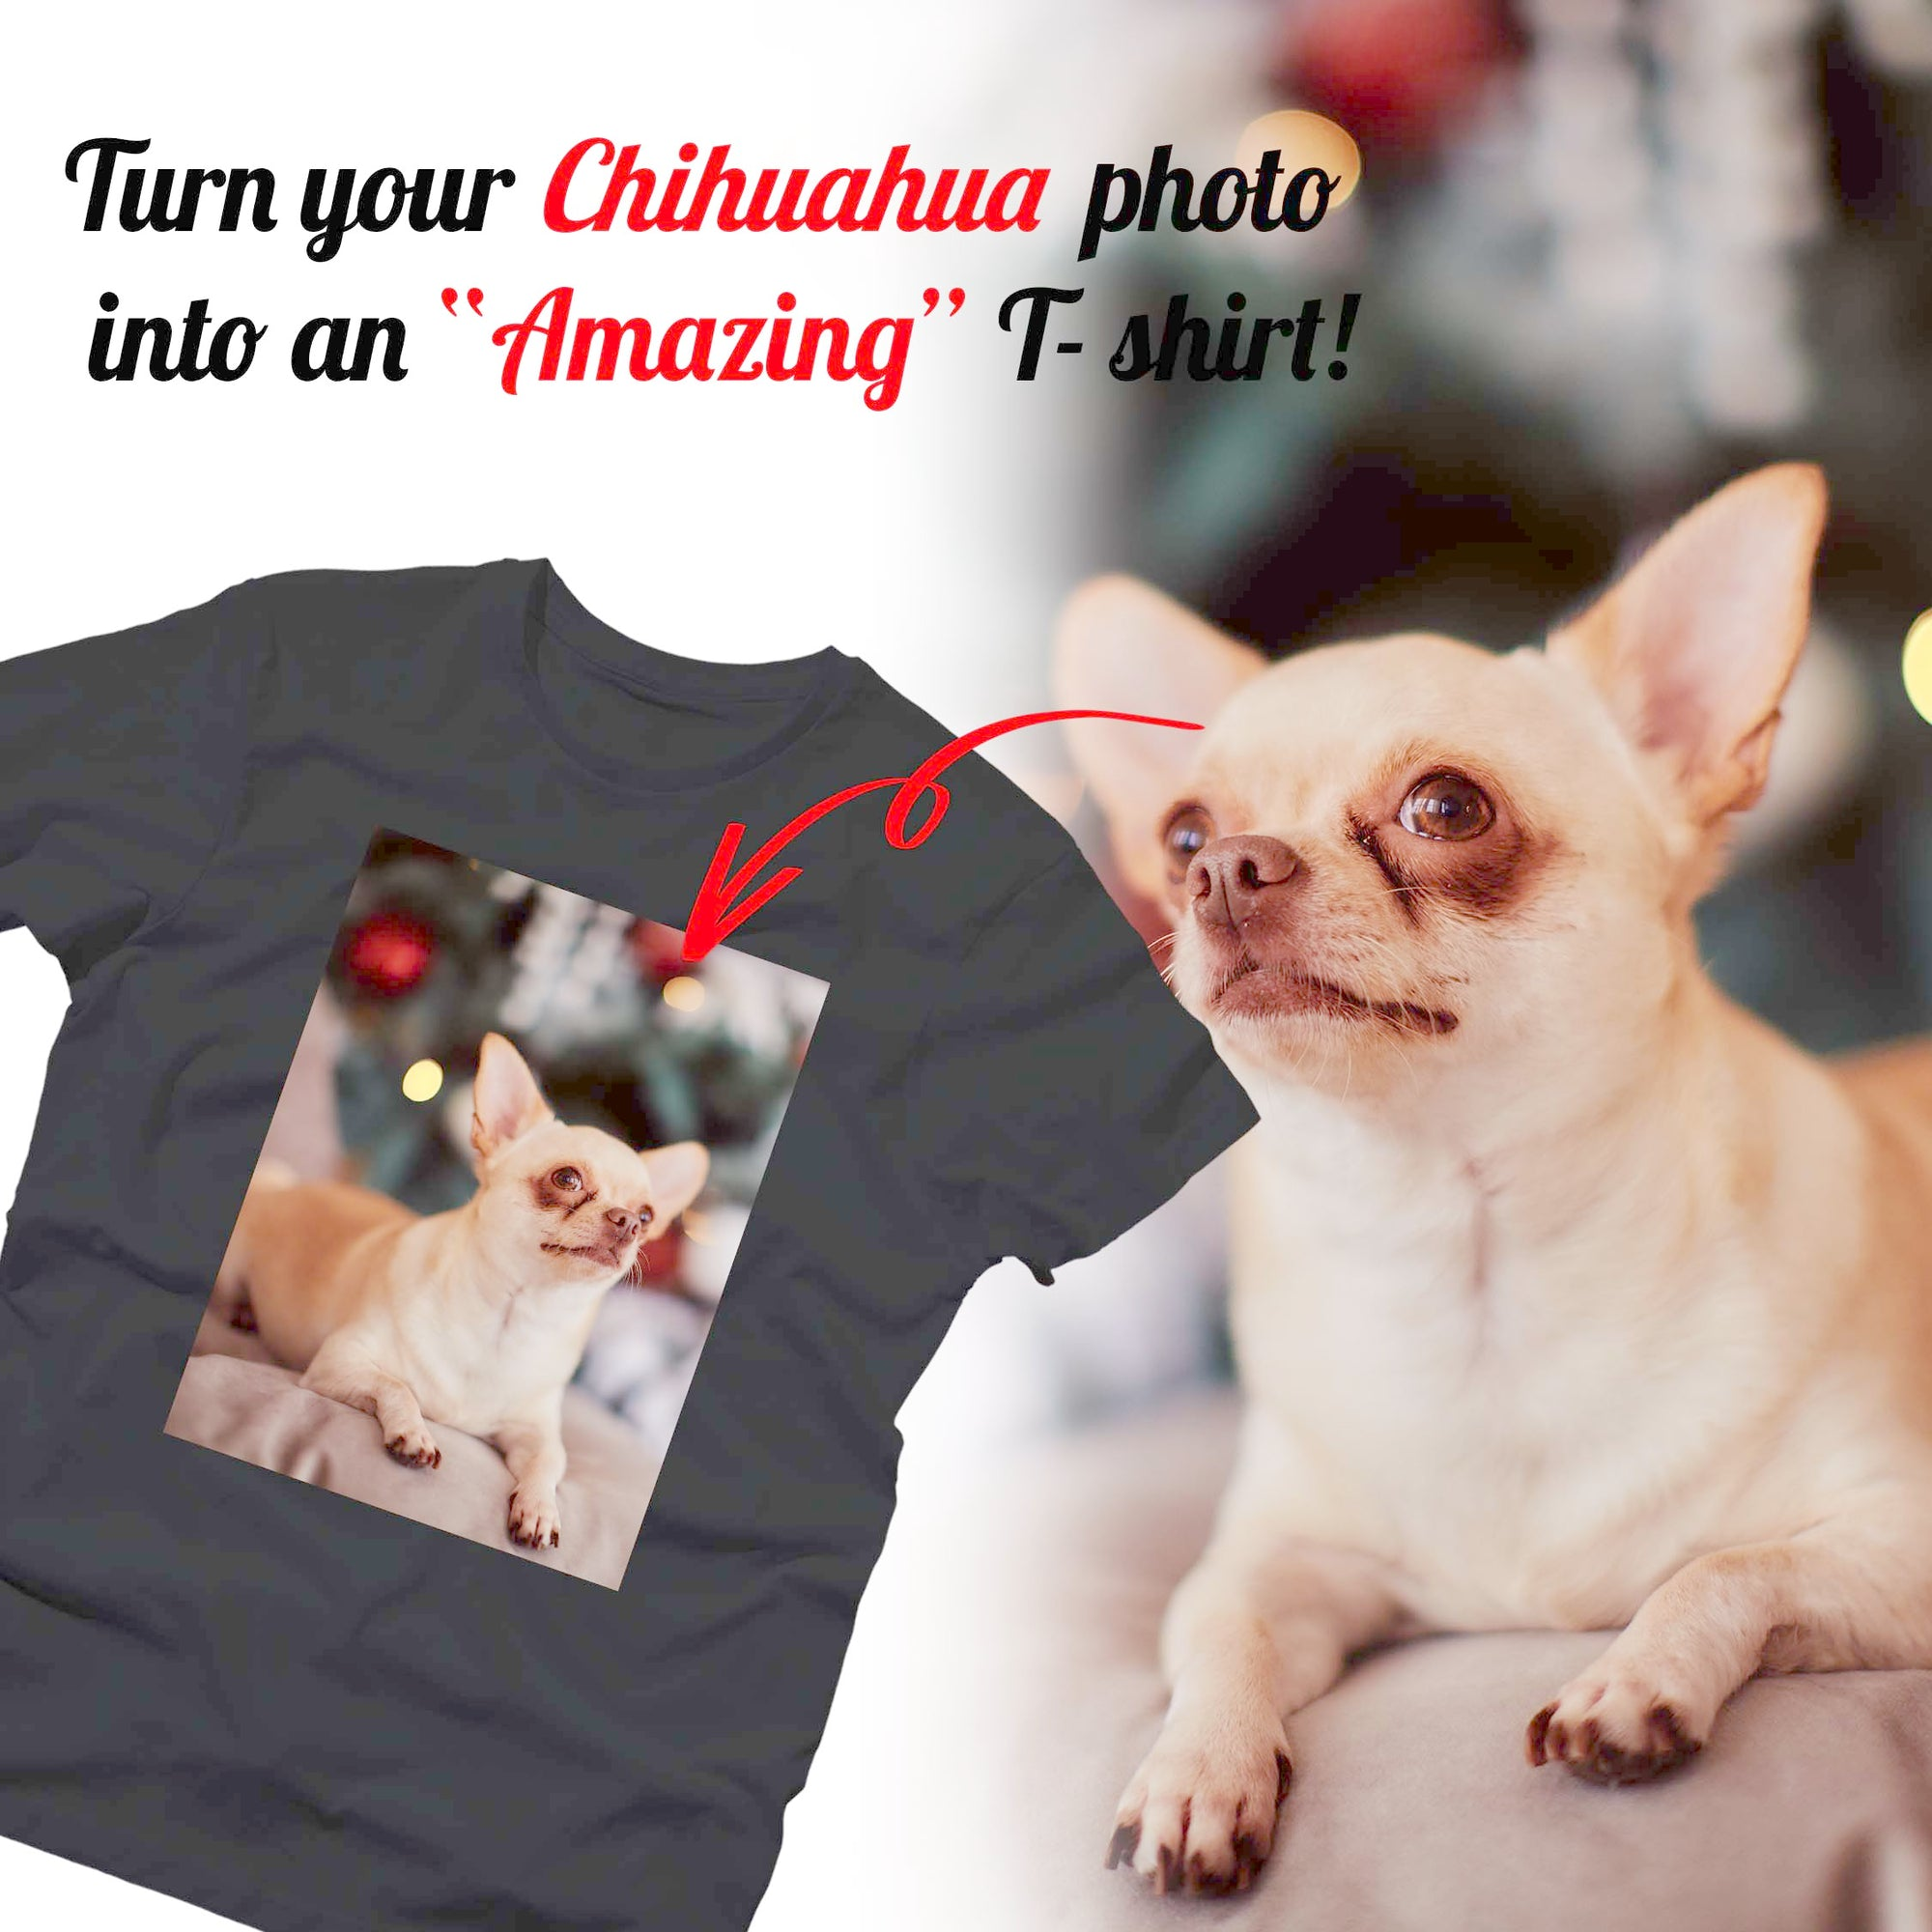 PERSONALIZED unisex T- shirt - upload your CHIHUAHUA photos